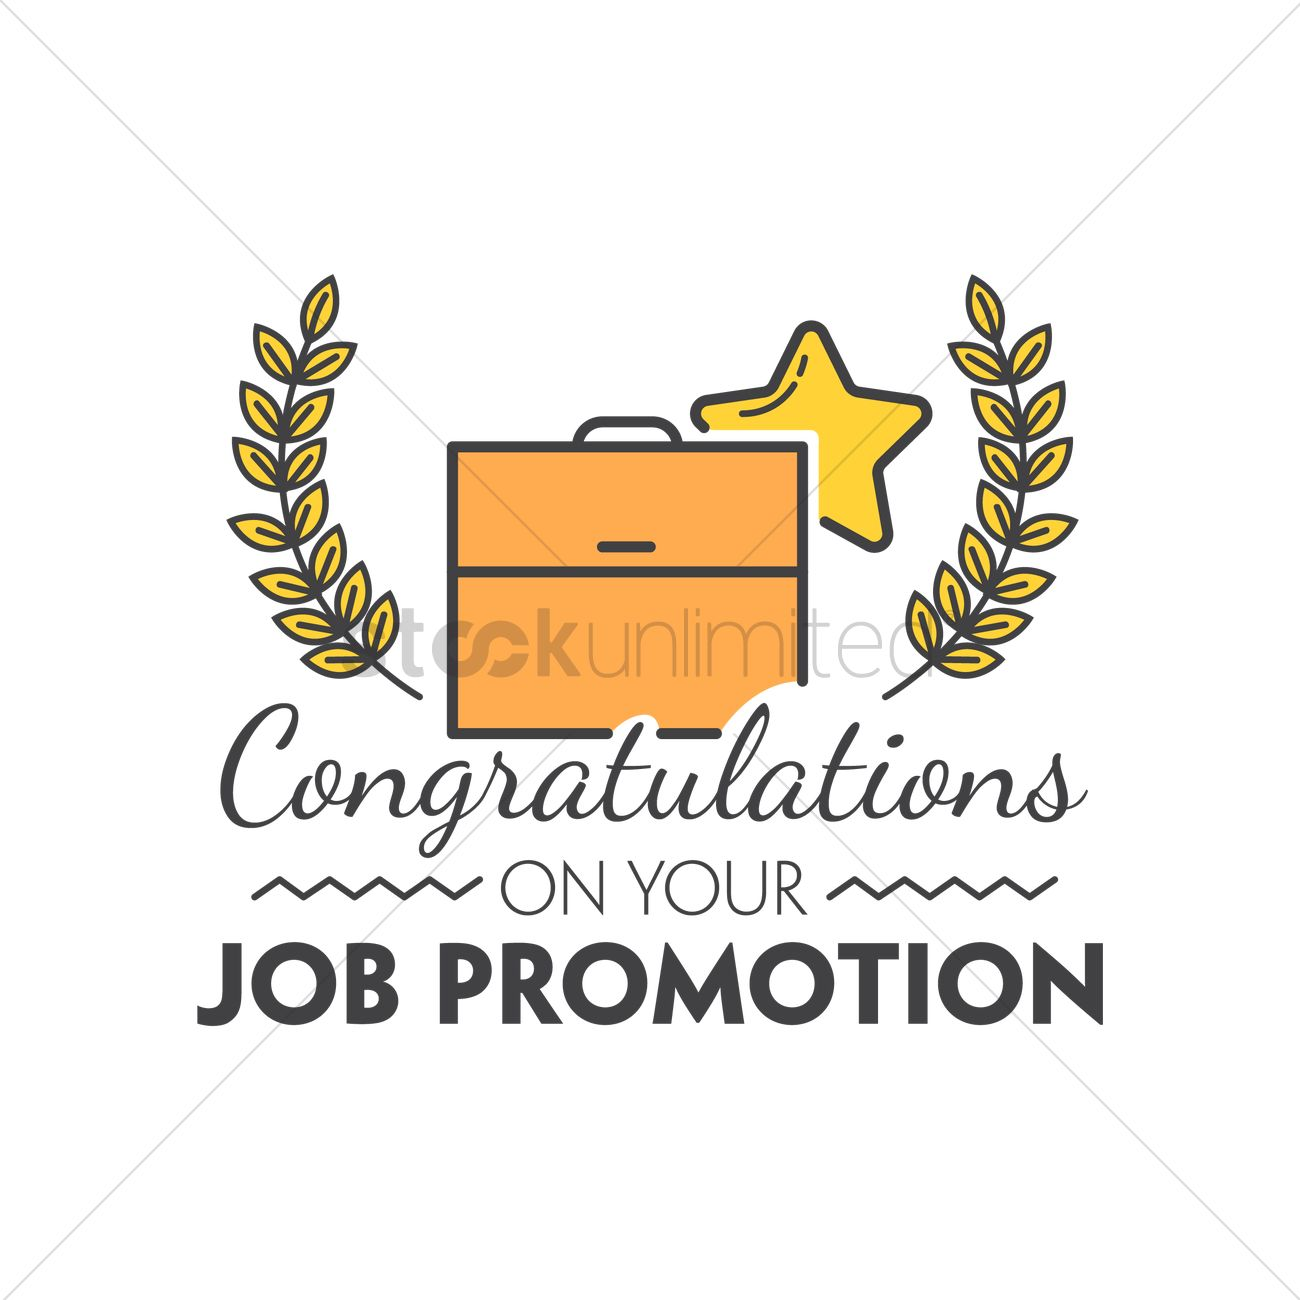 congrats-on-your-promotion